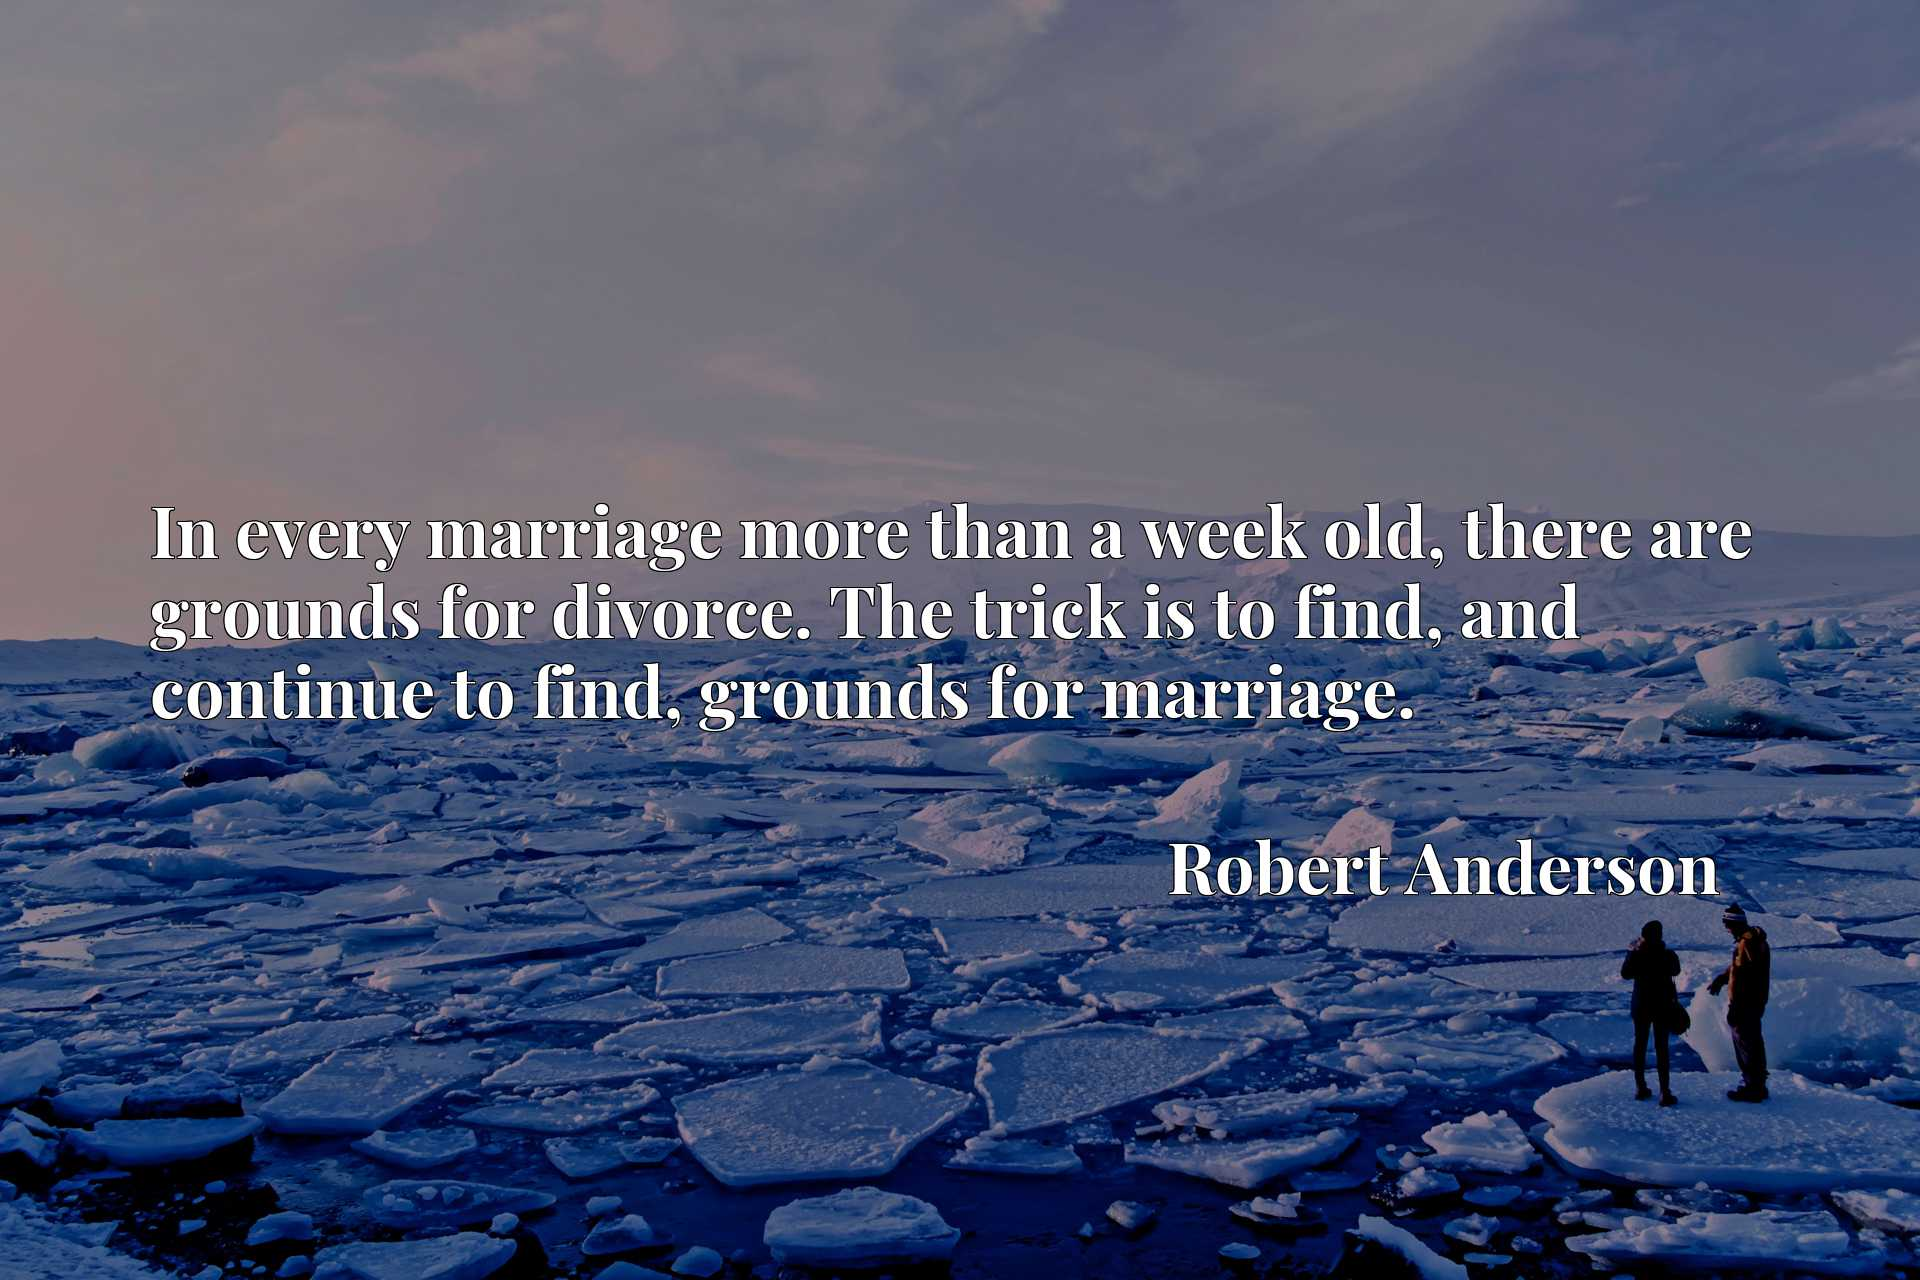 Quote Picture :In every marriage more than a week old, there are grounds for divorce. The trick is to find, and continue to find, grounds for marriage.